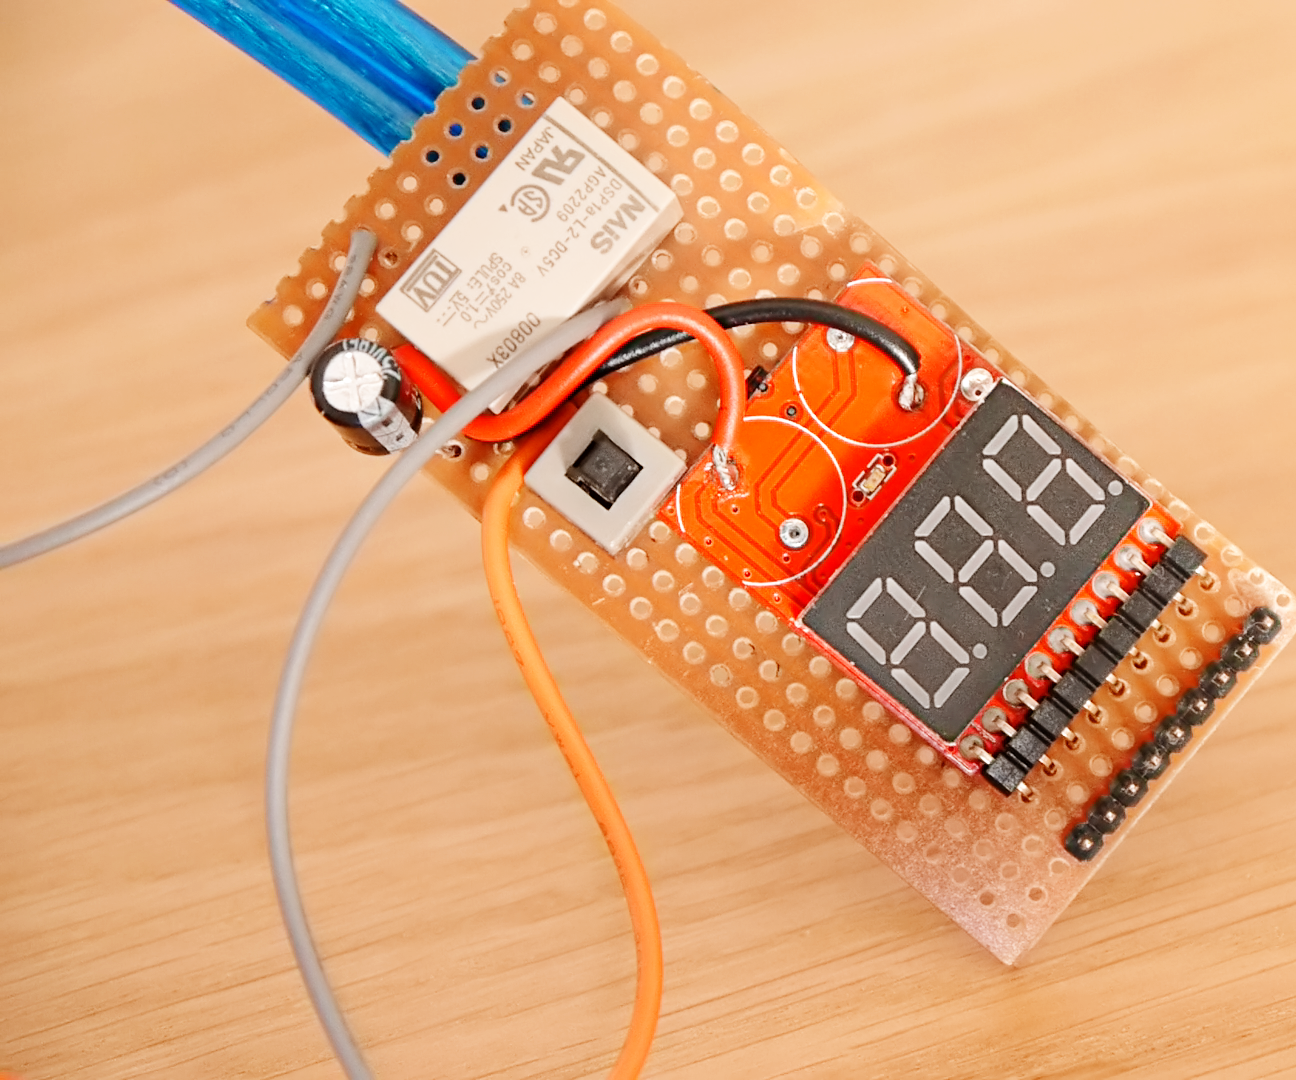 Make a Battery Protection Circuit (low voltage cut-off)